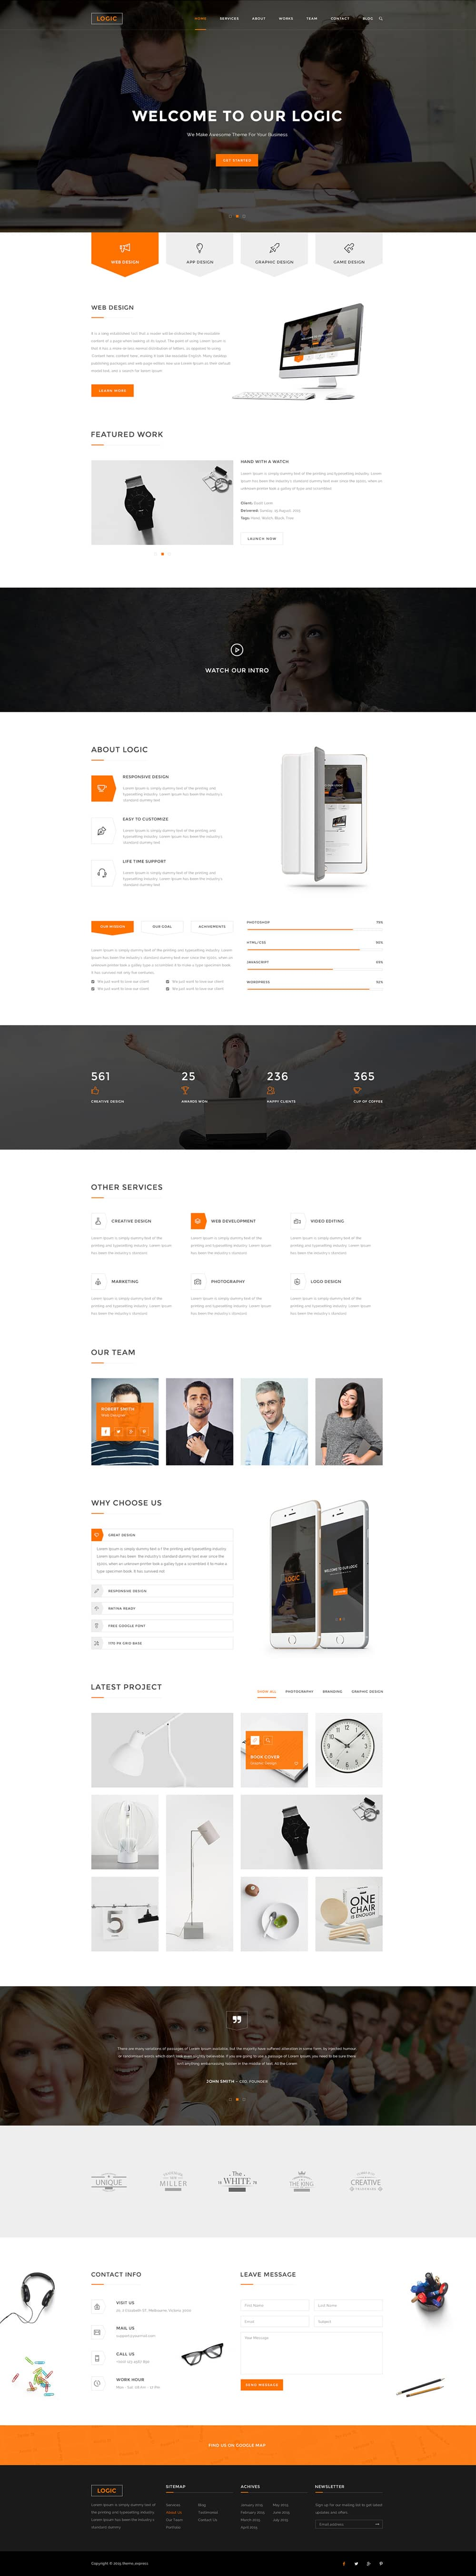 Free Multipurpose Business Web Template PSD